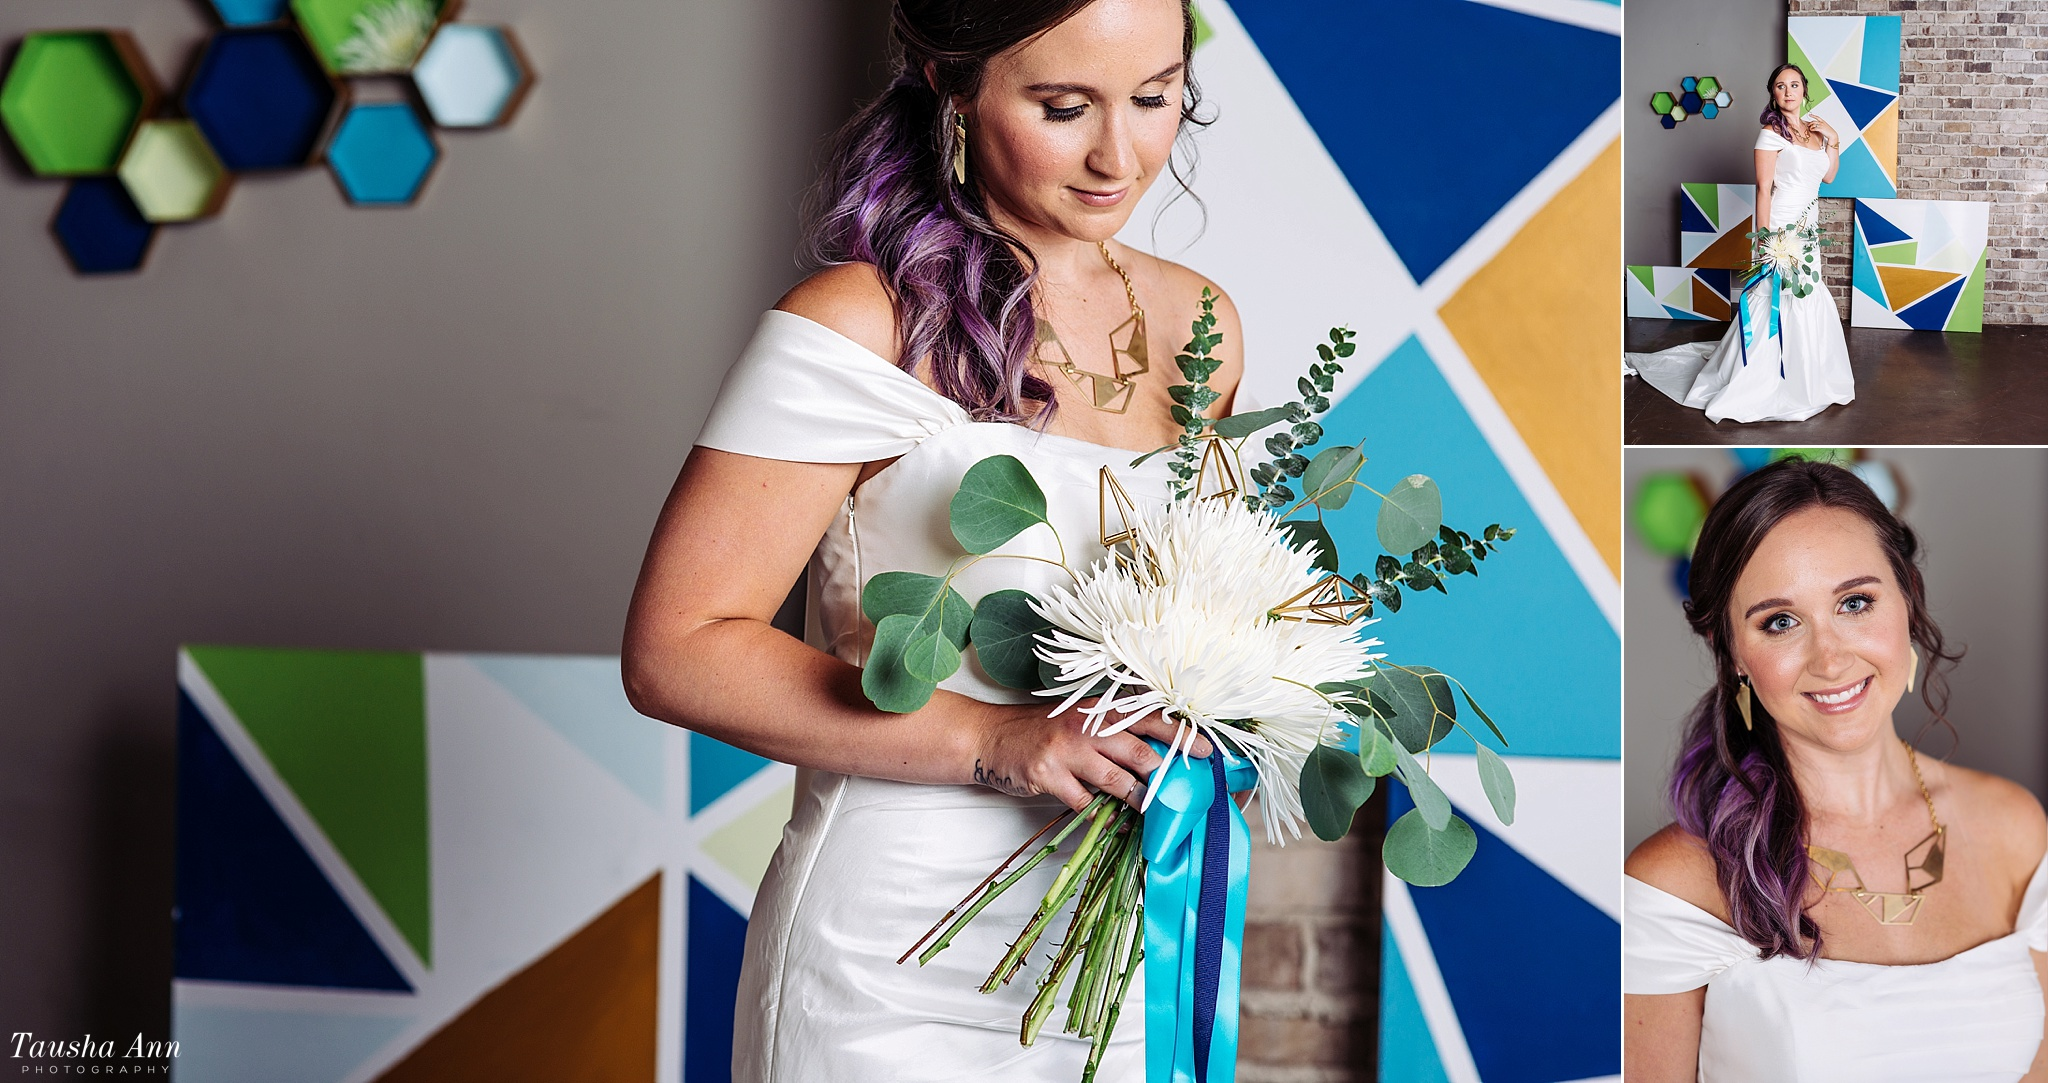 Nashville_Franklin_Photographer_Tausha_Ann_Photography_Styled_Nashville_Wedding_Southern_Inspration_Pinterest_Fabulous_Frocks_Aimee_Siegel_Paige_Barbee_Jewelry_0010